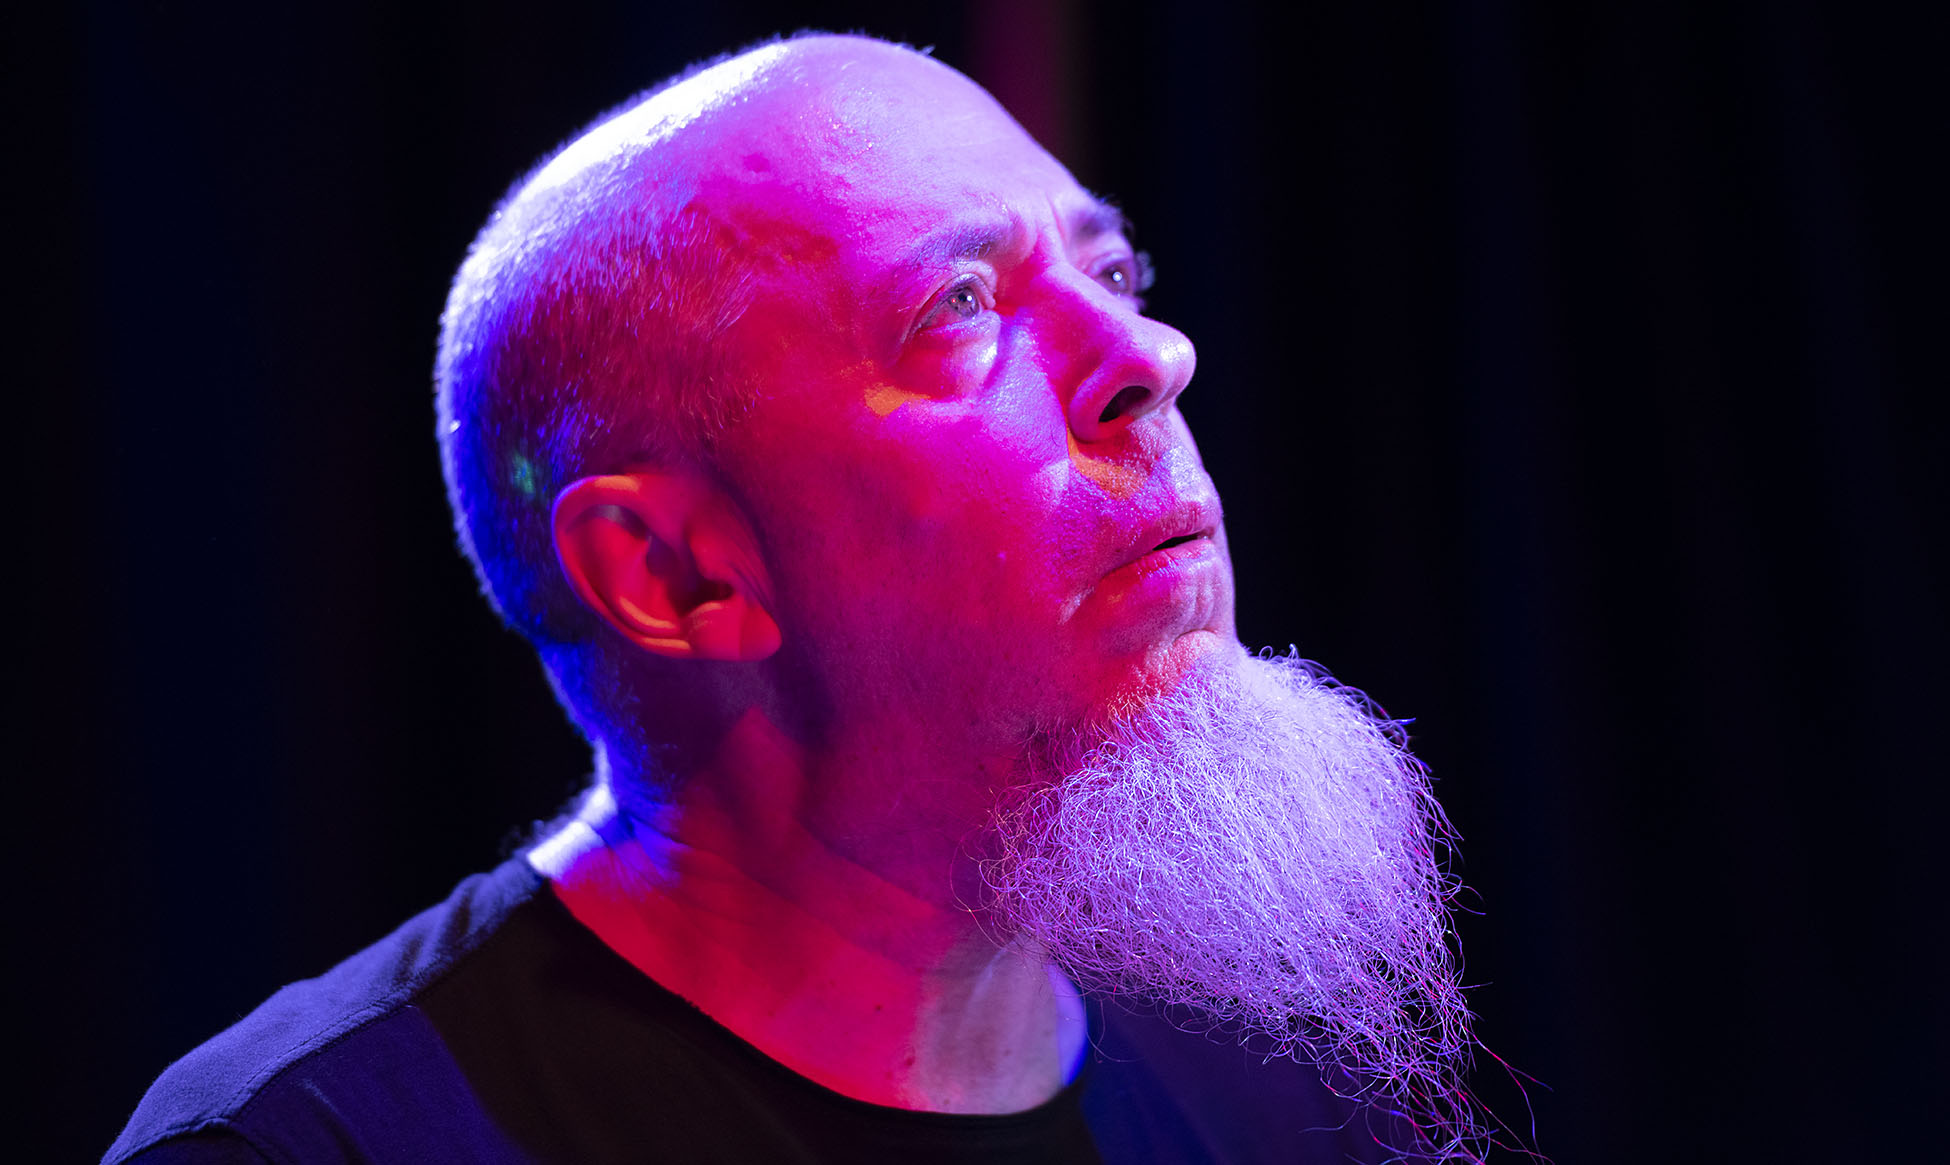 Jordan Rudess at the LoFaro Center of the Performing Arts, August 17, 2019